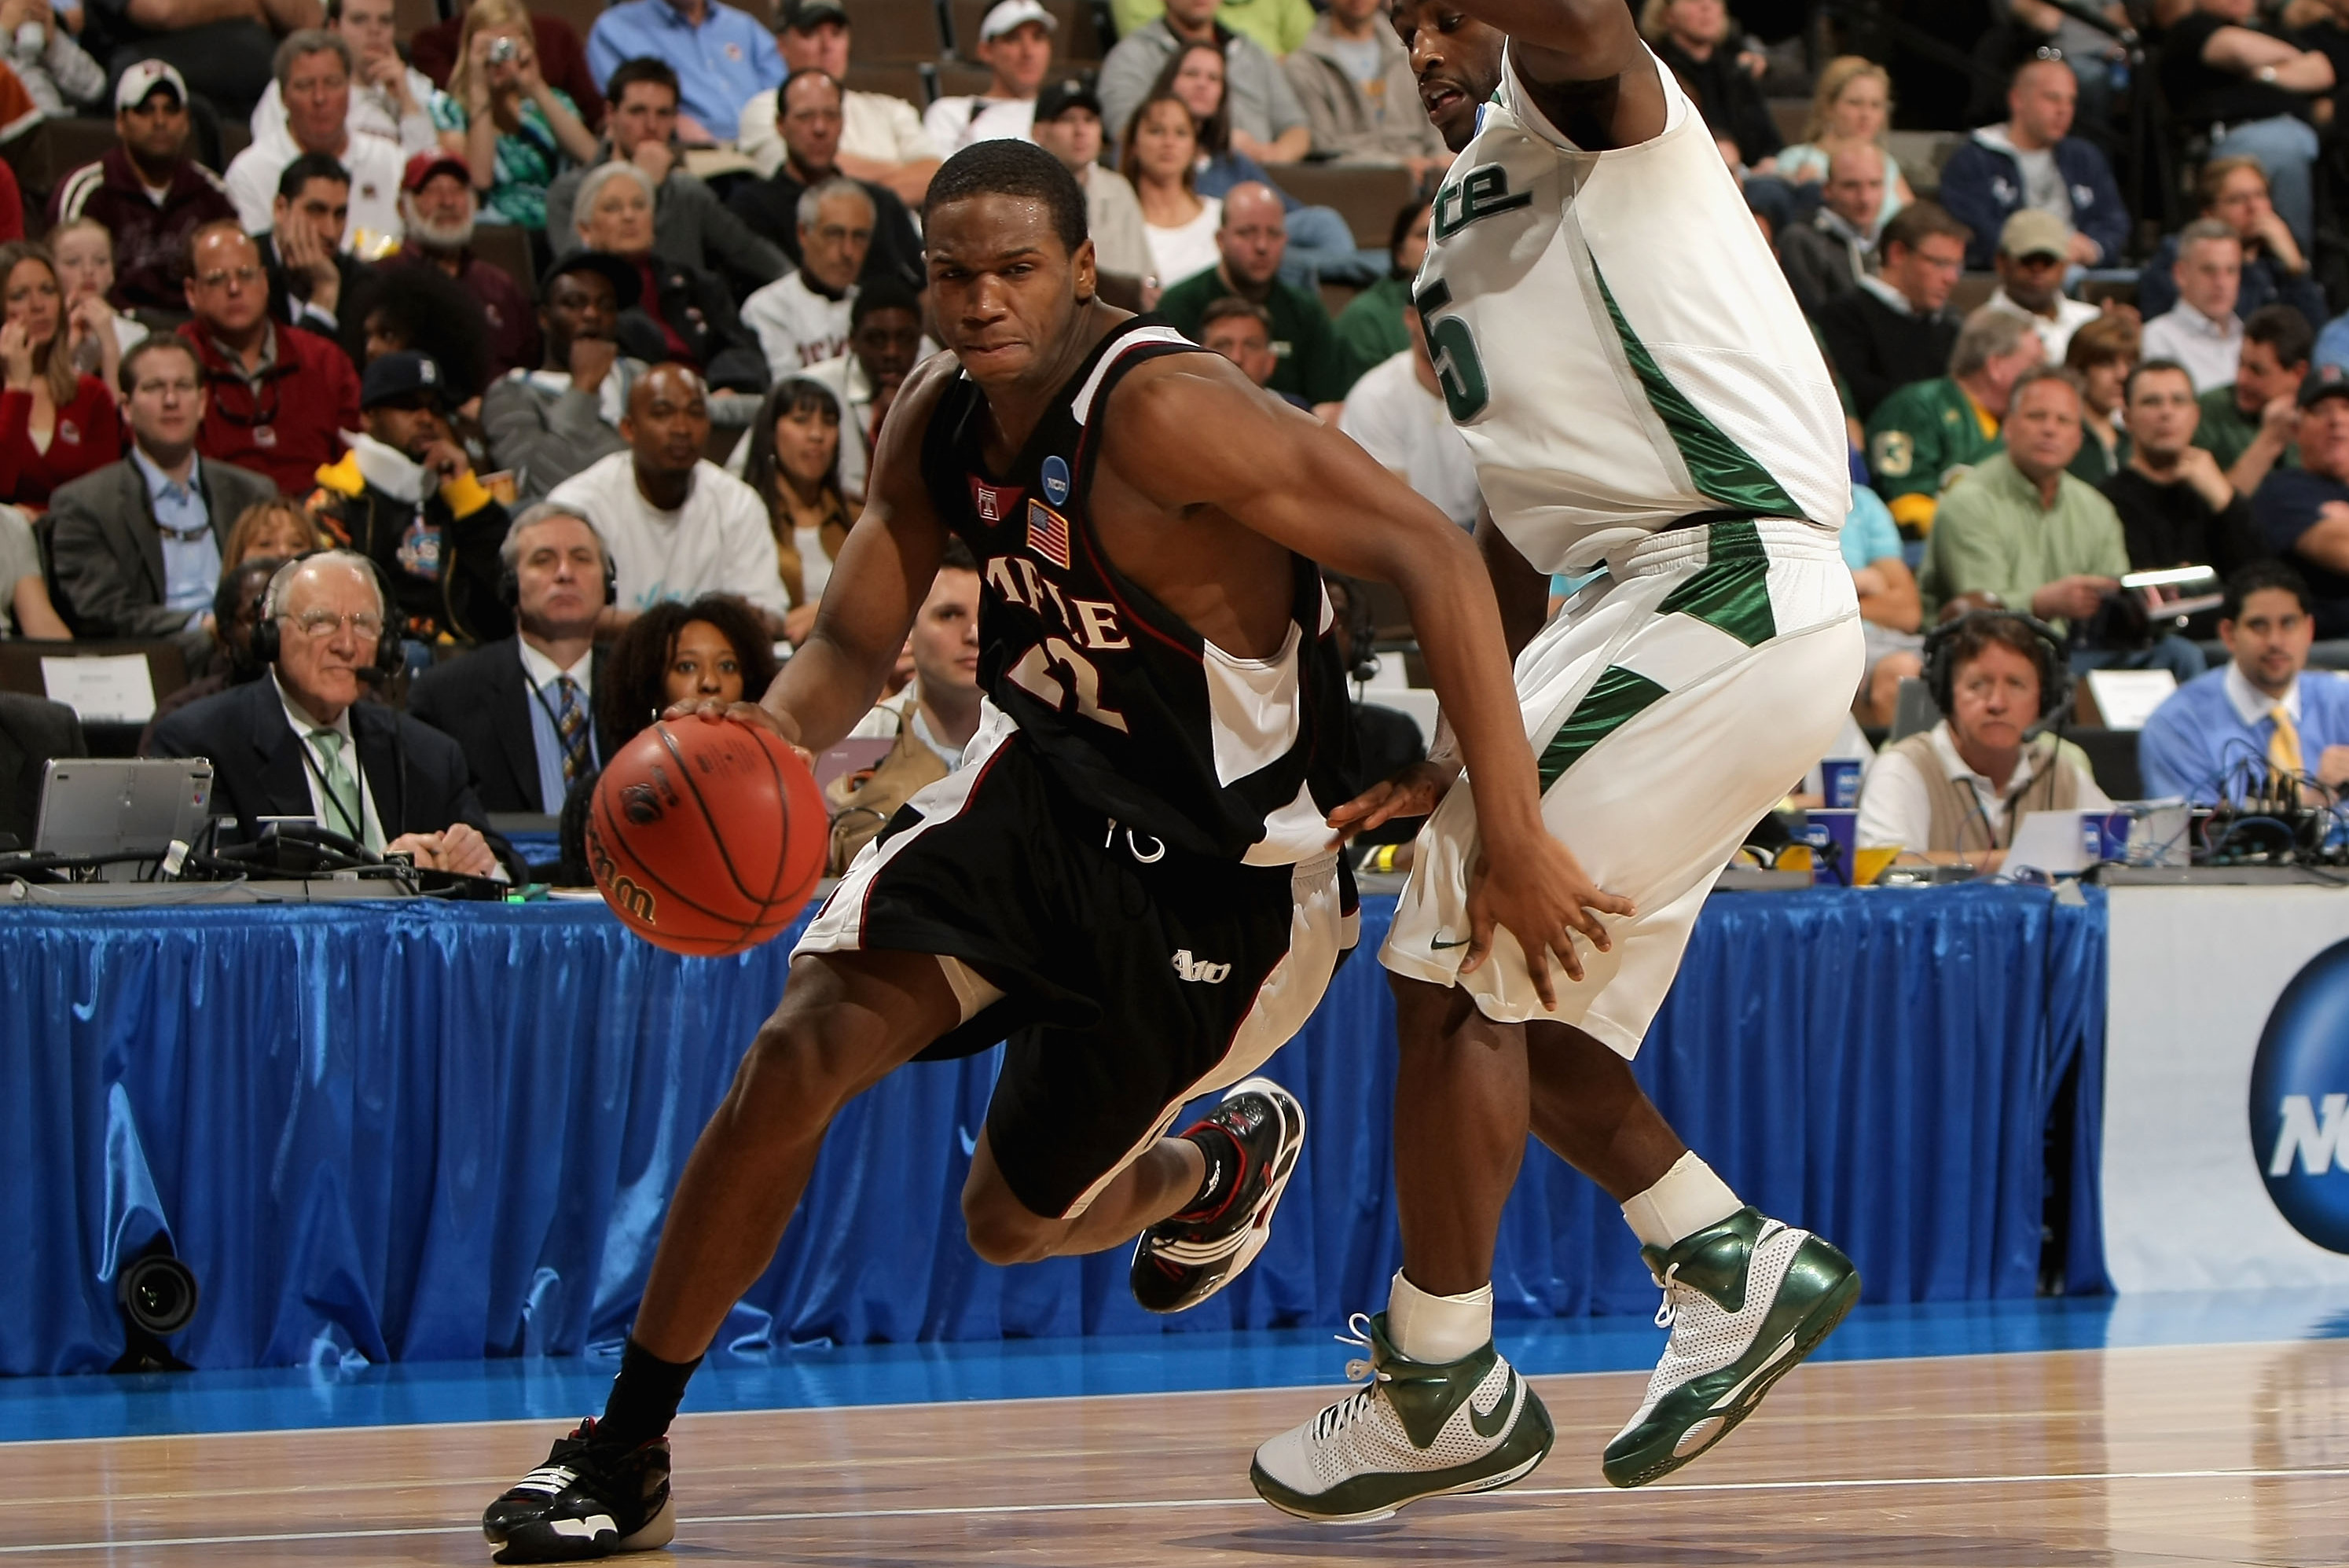 Dionte Christmas.Boston Celtics Dionte Christmas Makes His Desire To Play In The Nba